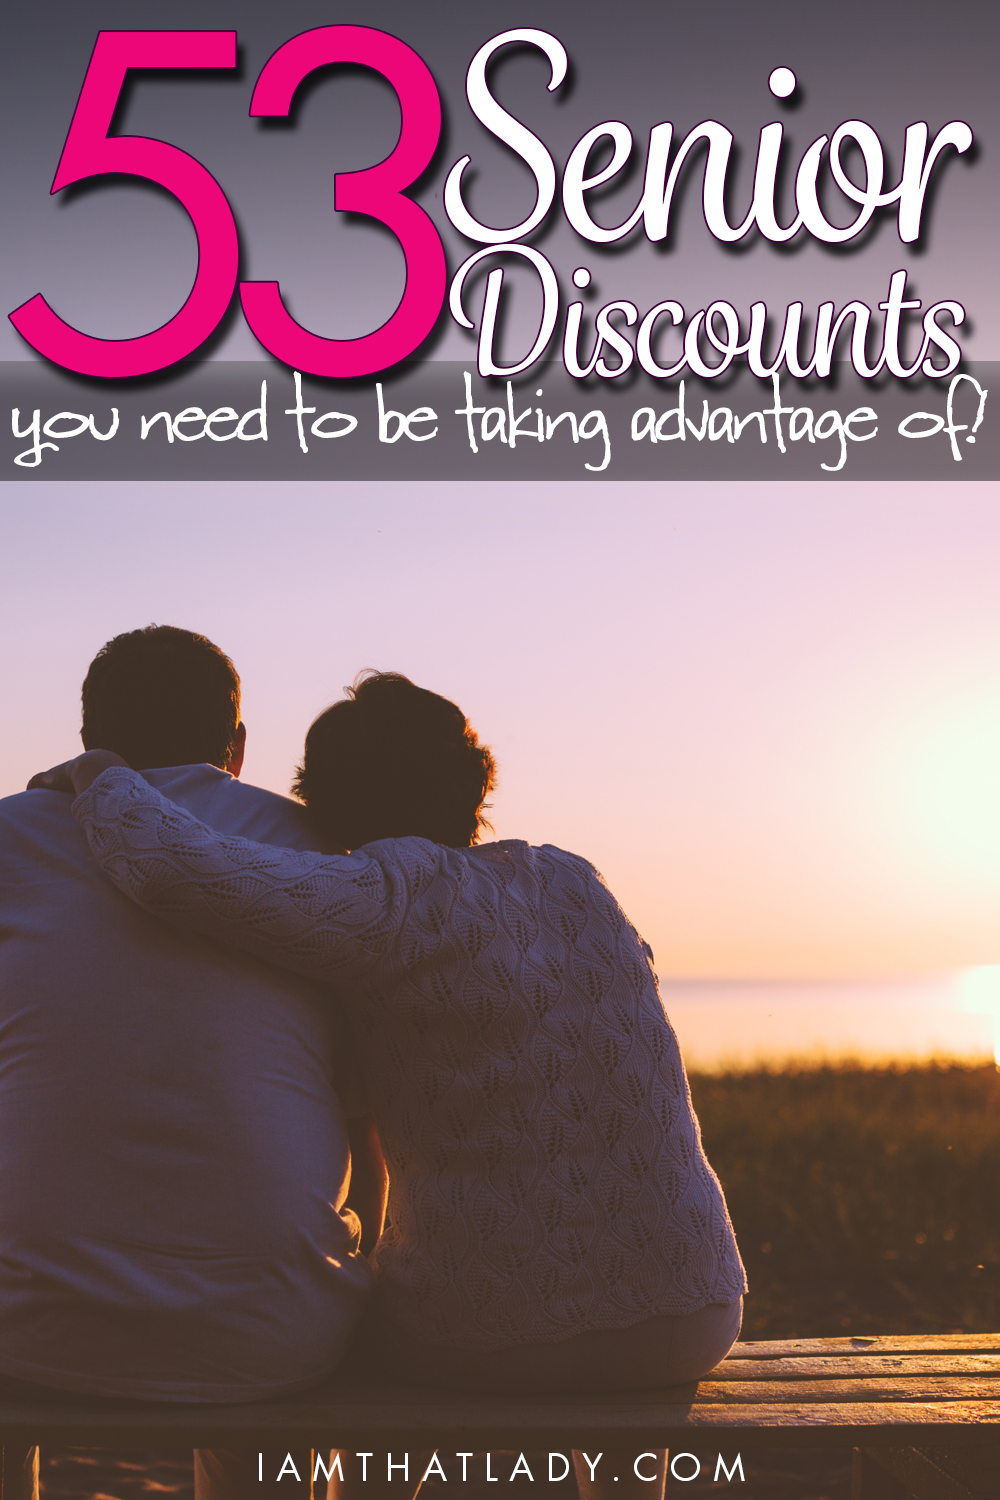 DISCOUNTS FOR 50 AND OVER